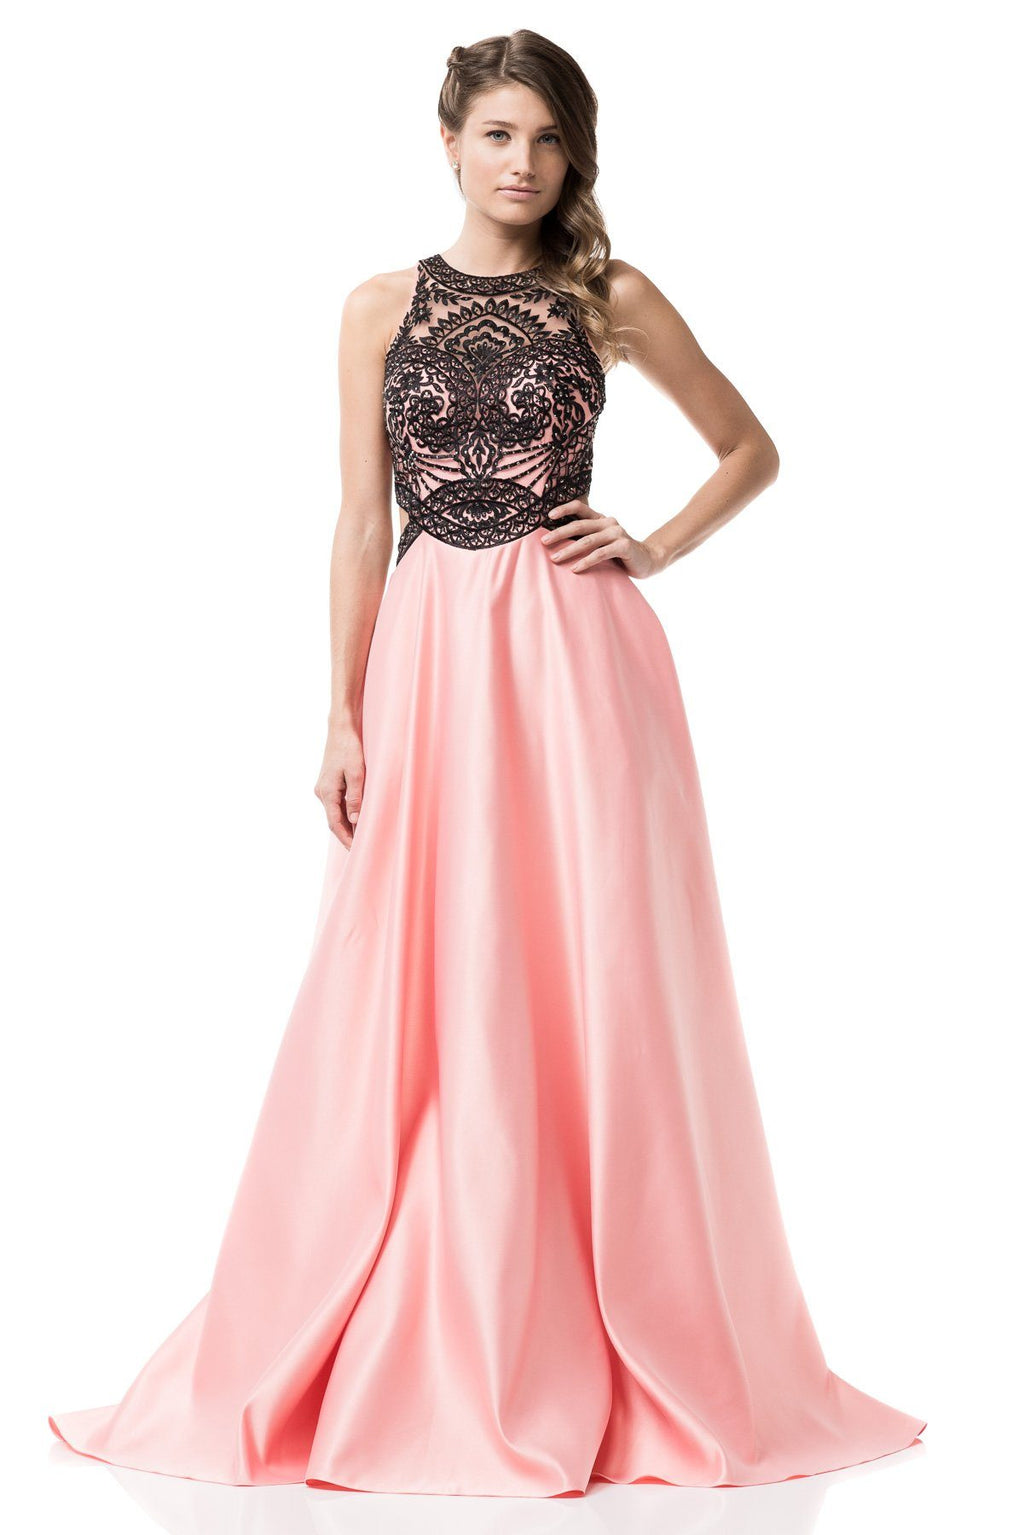 Pink ball gown prom dress 3BB IQ381 - Simply Fab Dress